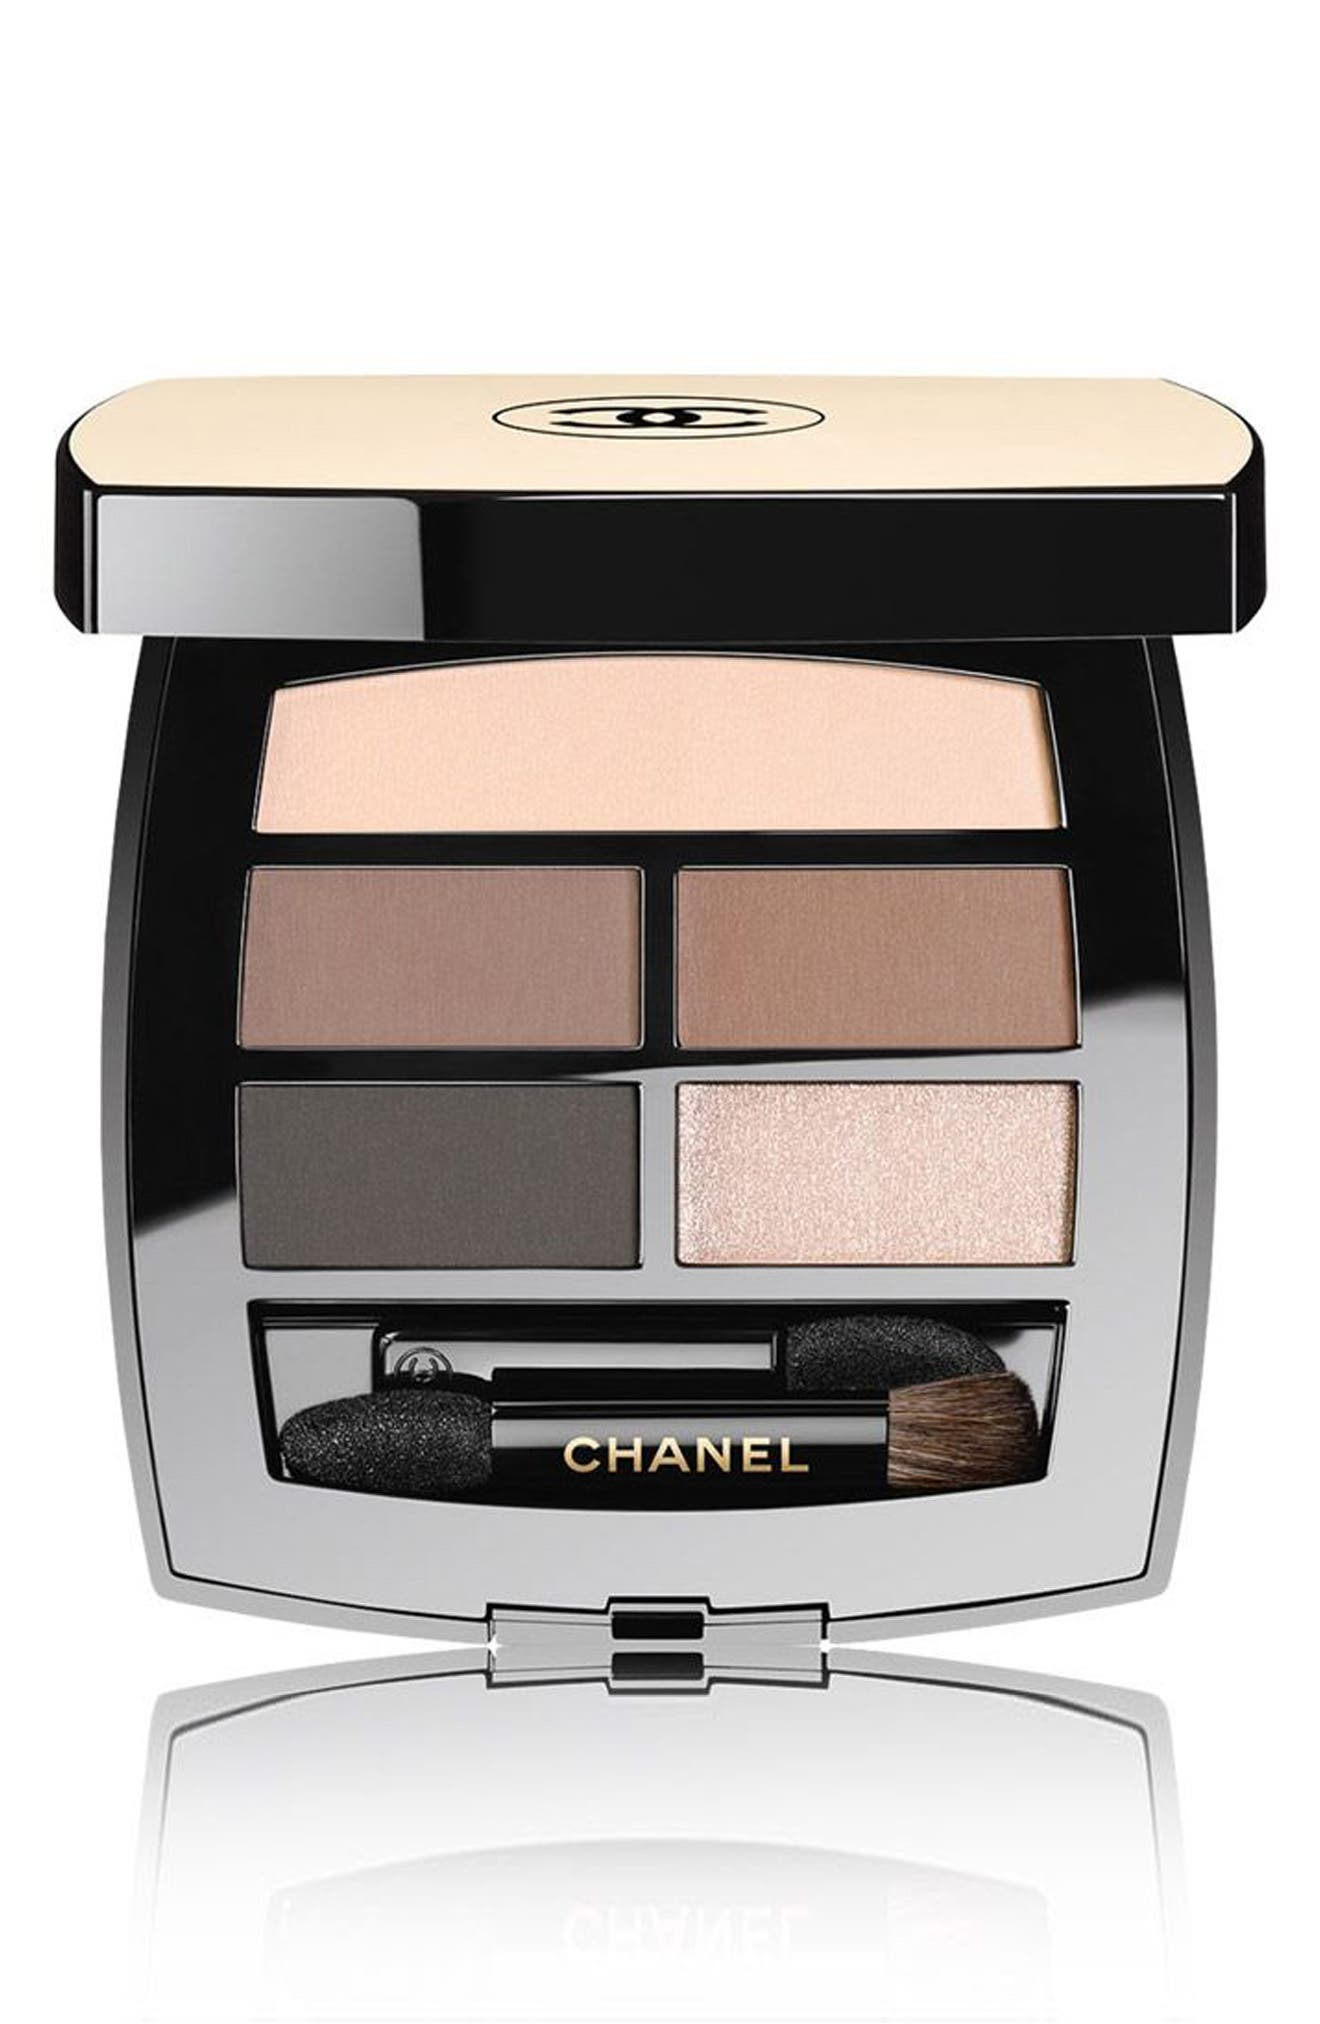 CHANEL, LES BEIGES HEALTHY GLOW Natural Eyeshadow Palette, Main thumbnail 1, color, MEDIUM